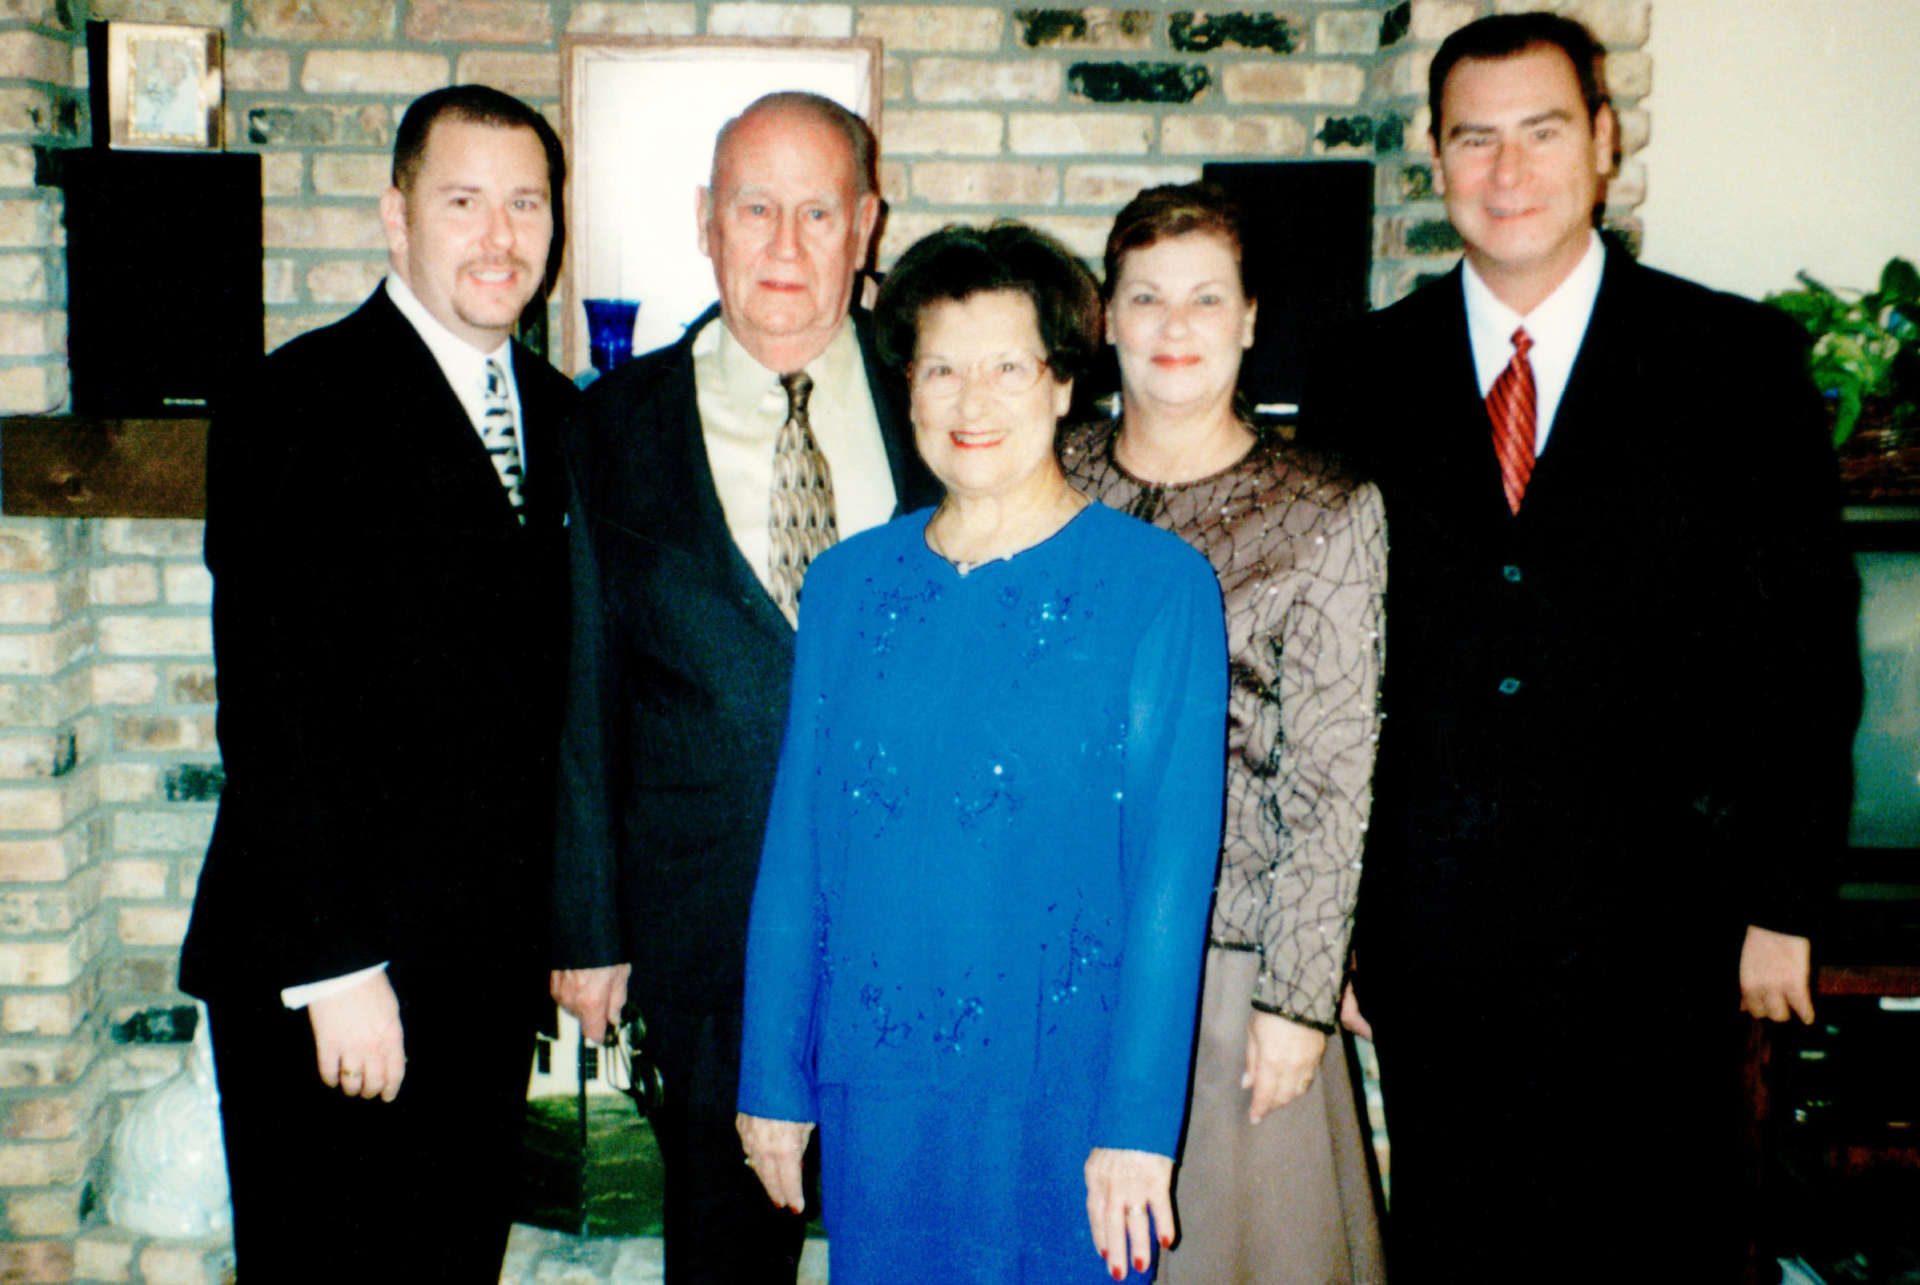 The Best family in 2001. (pictured l. to r.) Christopher Oland Best, Preston E. Best, Sr., June Oland Best, Catherine Rebecca Stiele, and Preston E. Best, Jr.